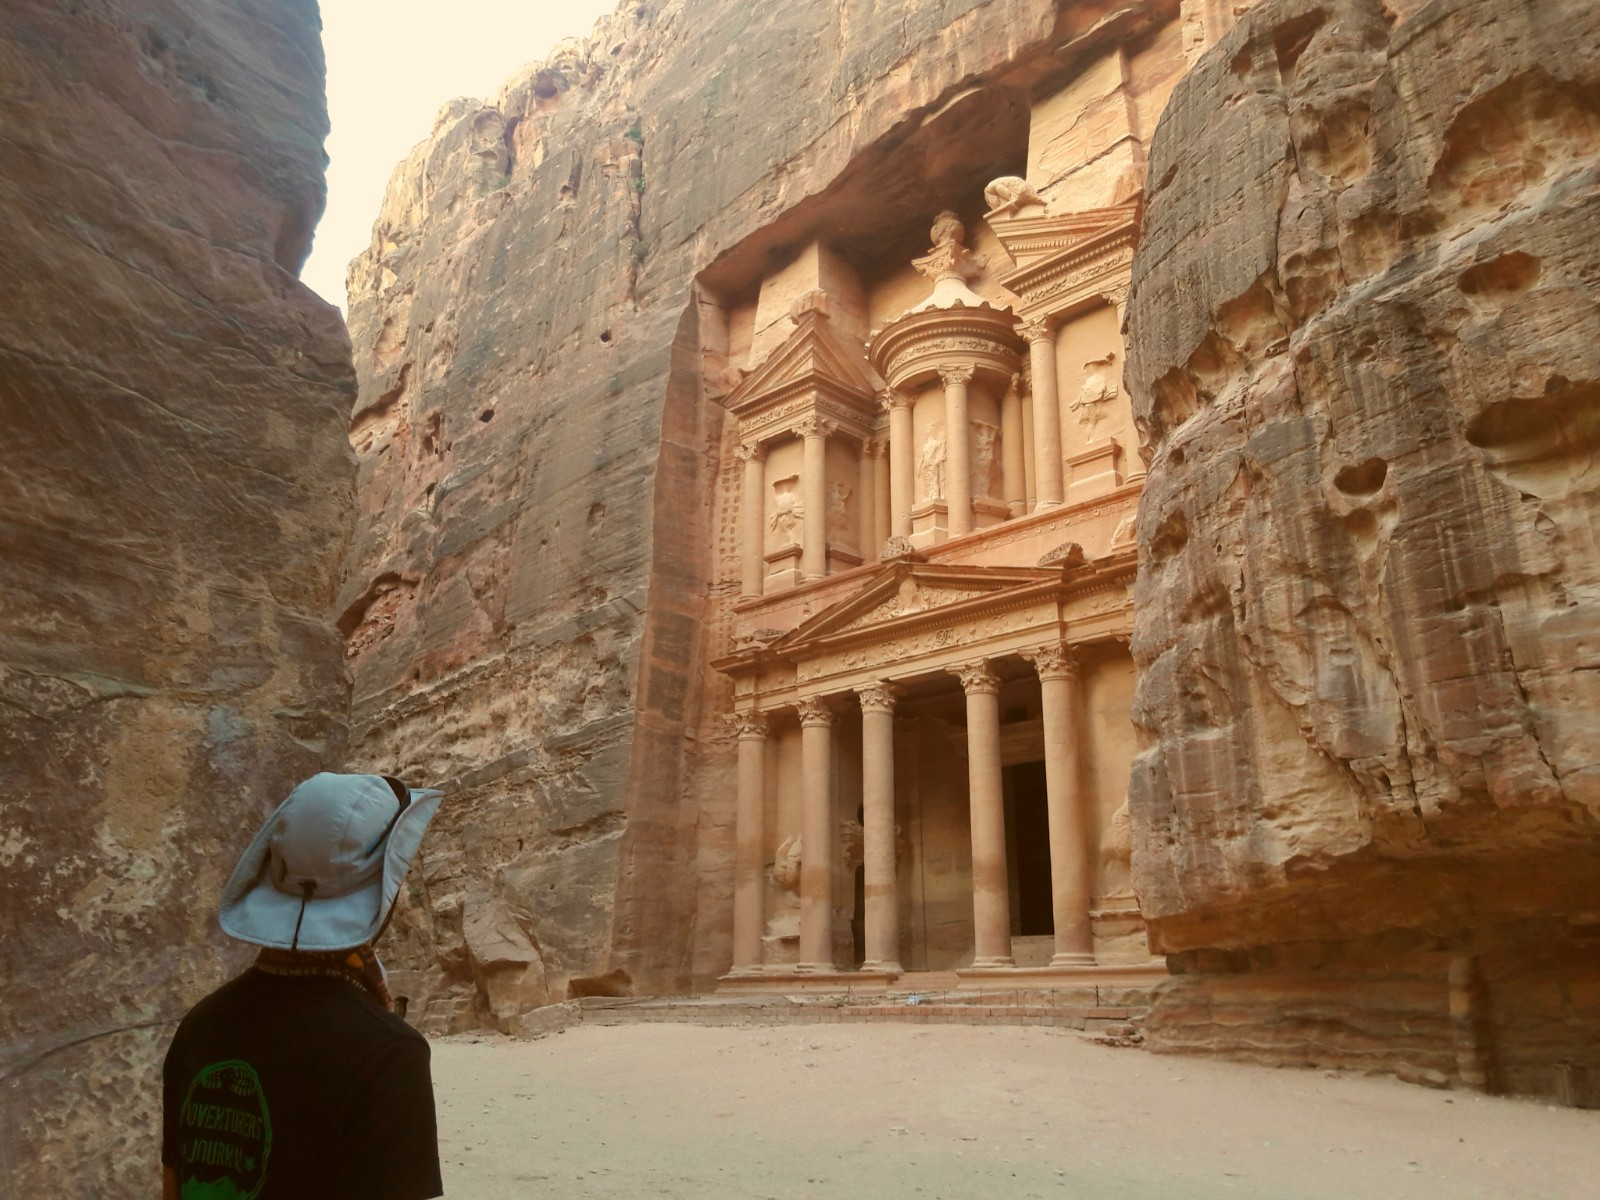 the sale of shoes presenting buy sale Guide to hiking the trails of Petra | An Adventurers Journal